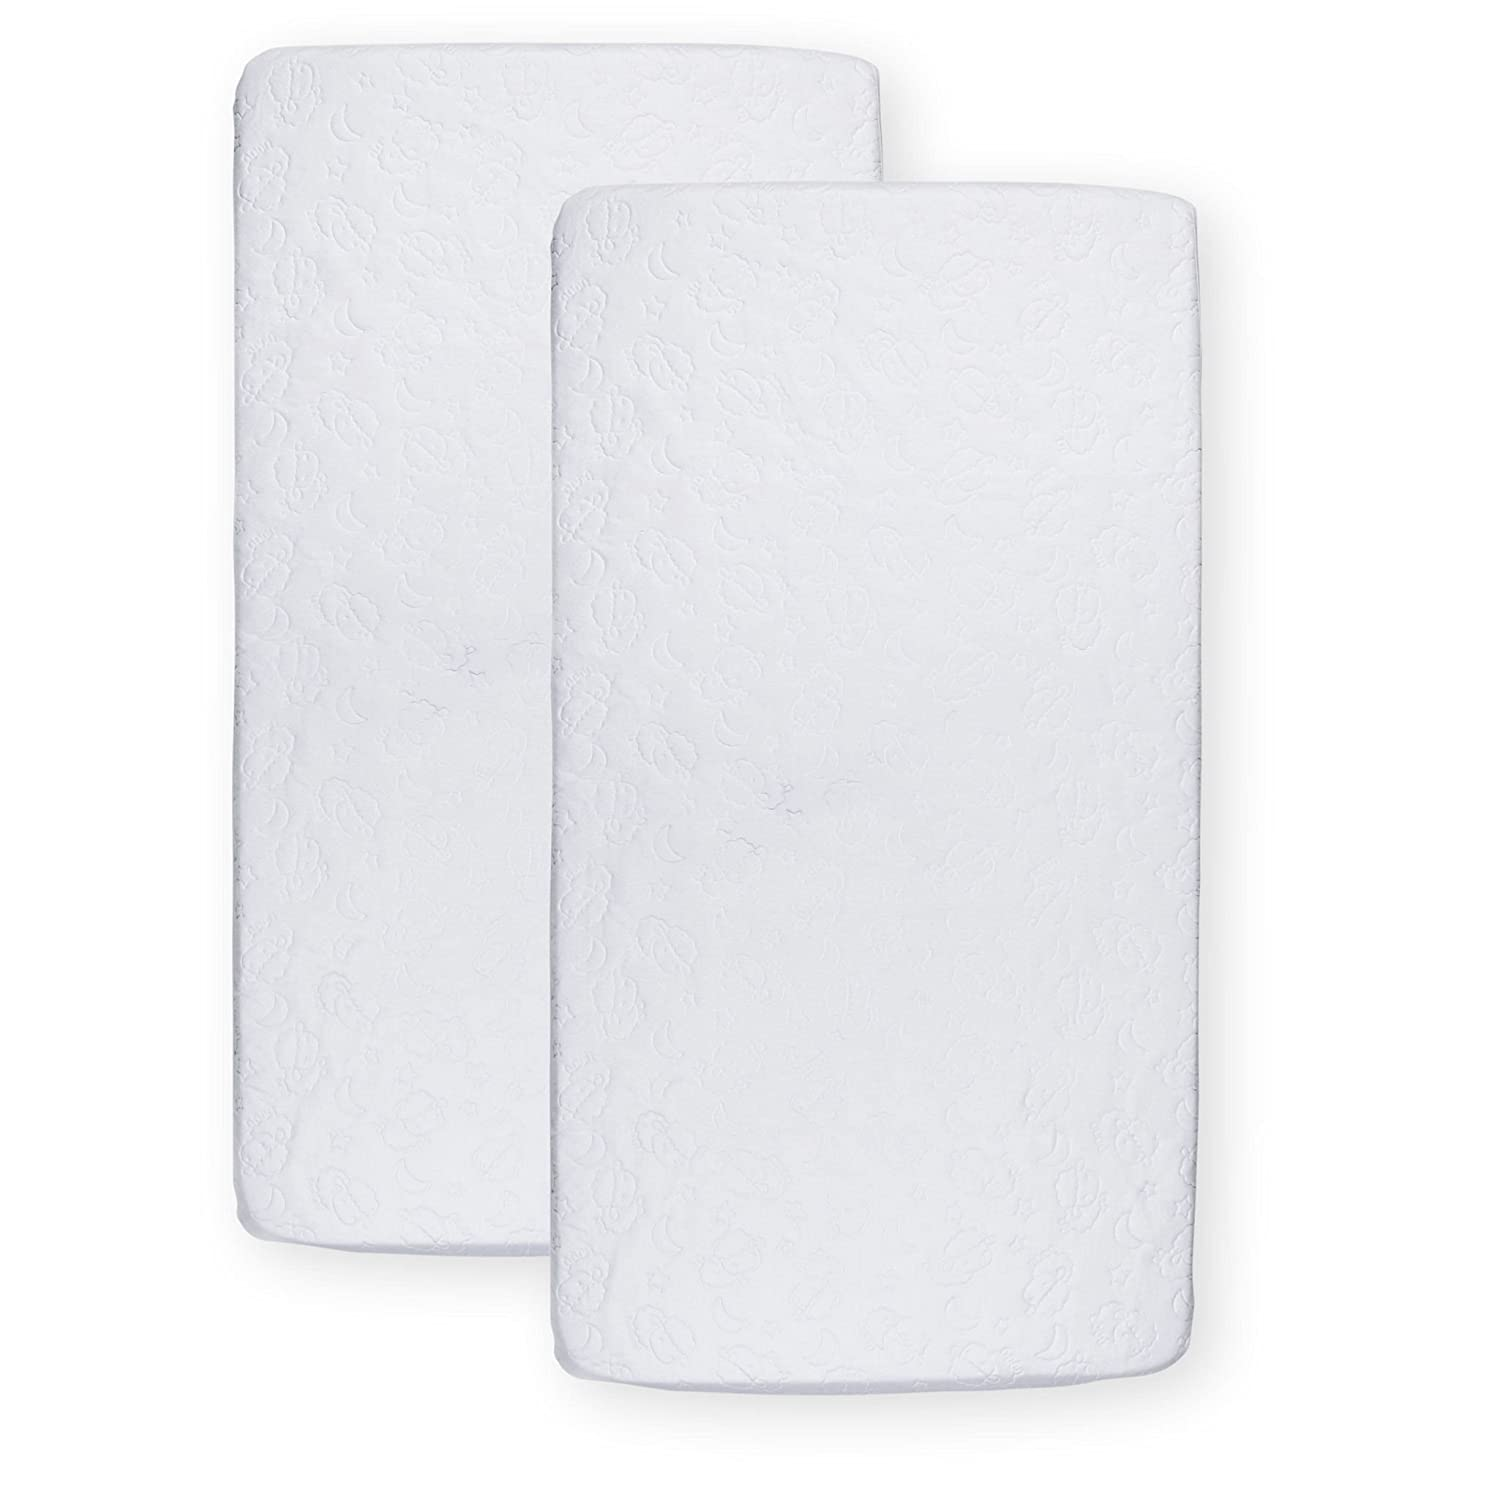 Amazon.com: Koala Baby Essentials Fitted Crib Mattress Cover 2 Pack: Home & Kitchen